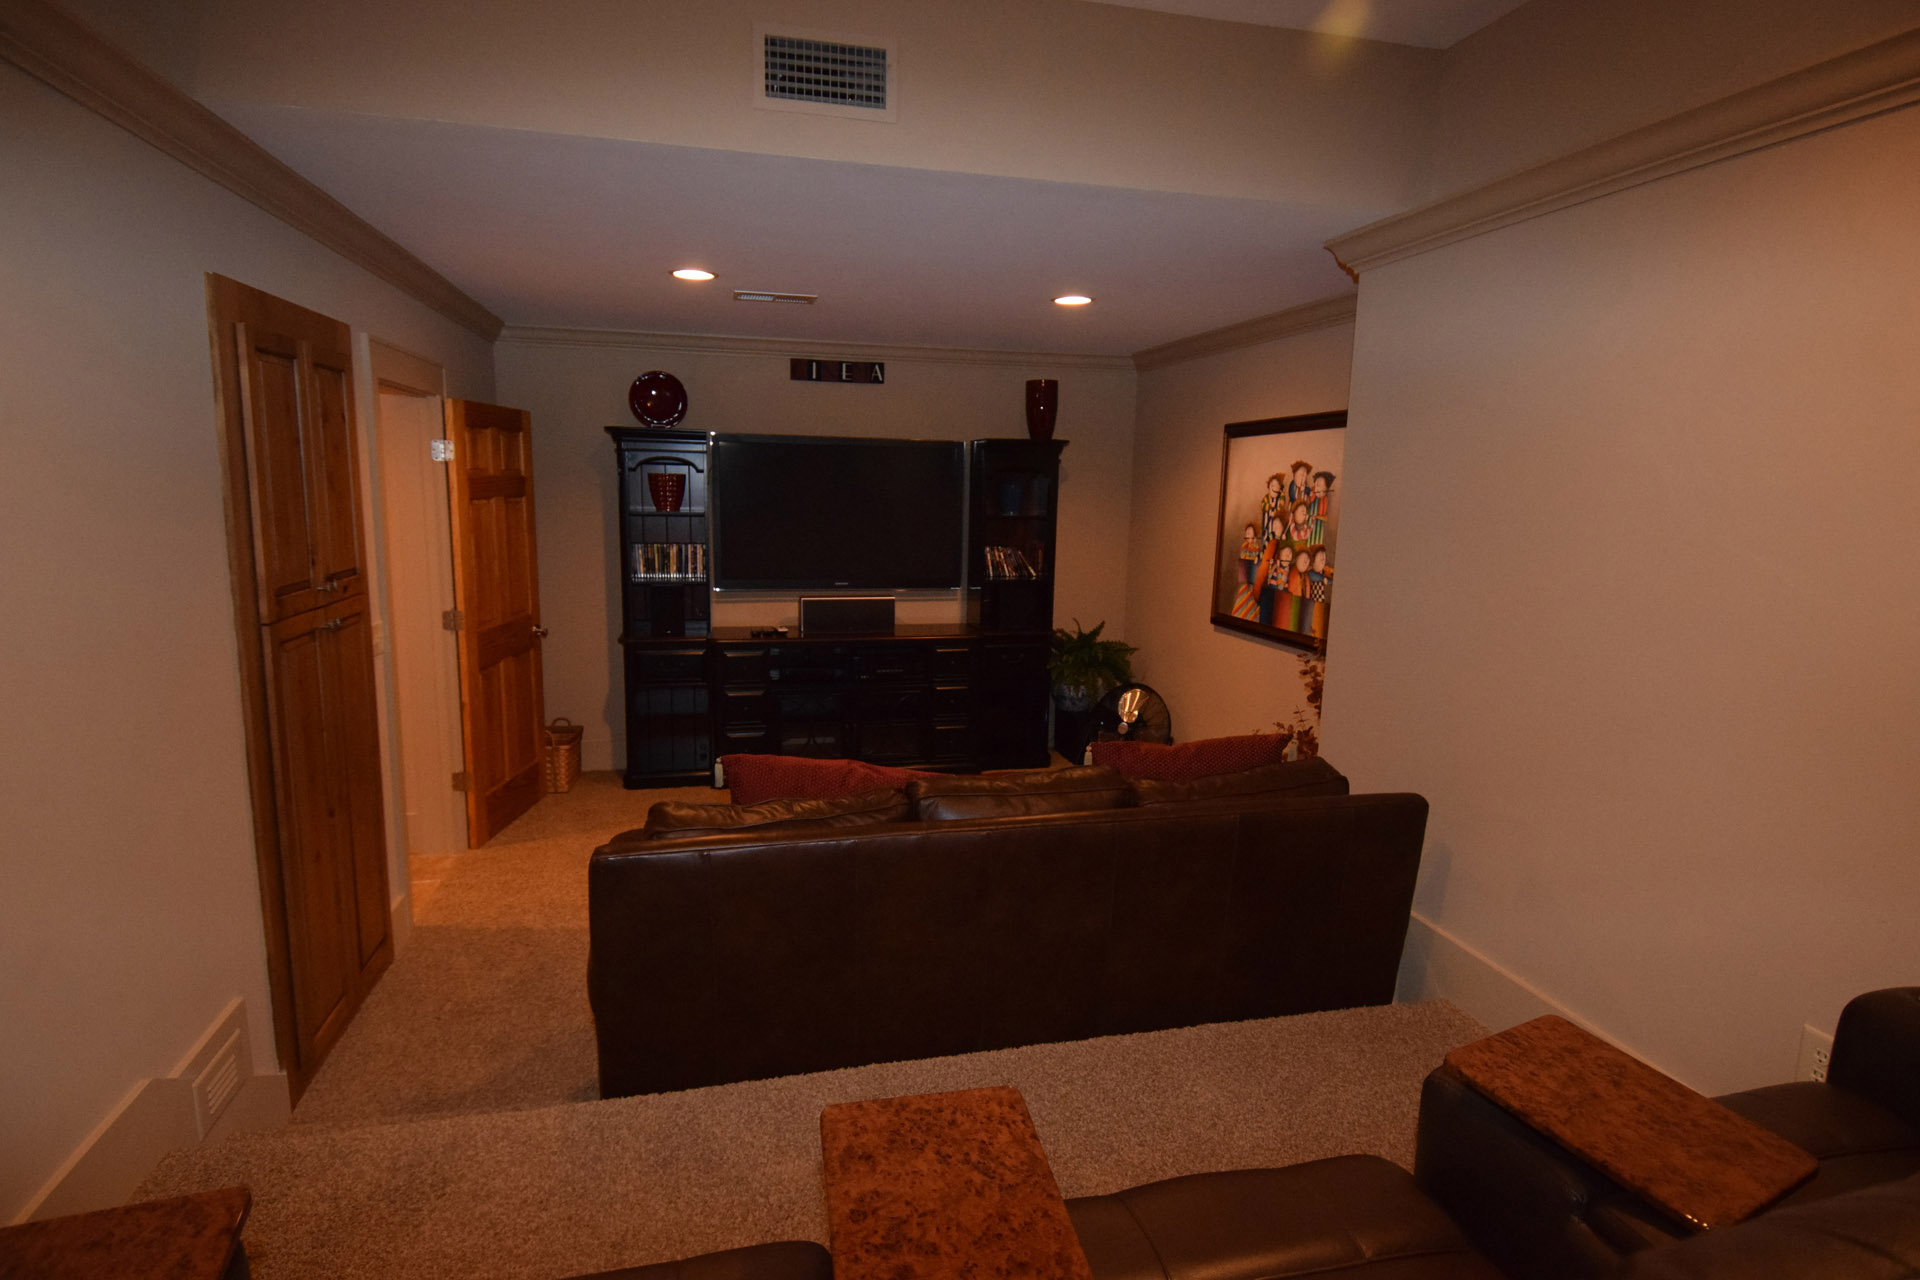 ShilohCreekModelHome_2017Revisions_Theater1.jpg